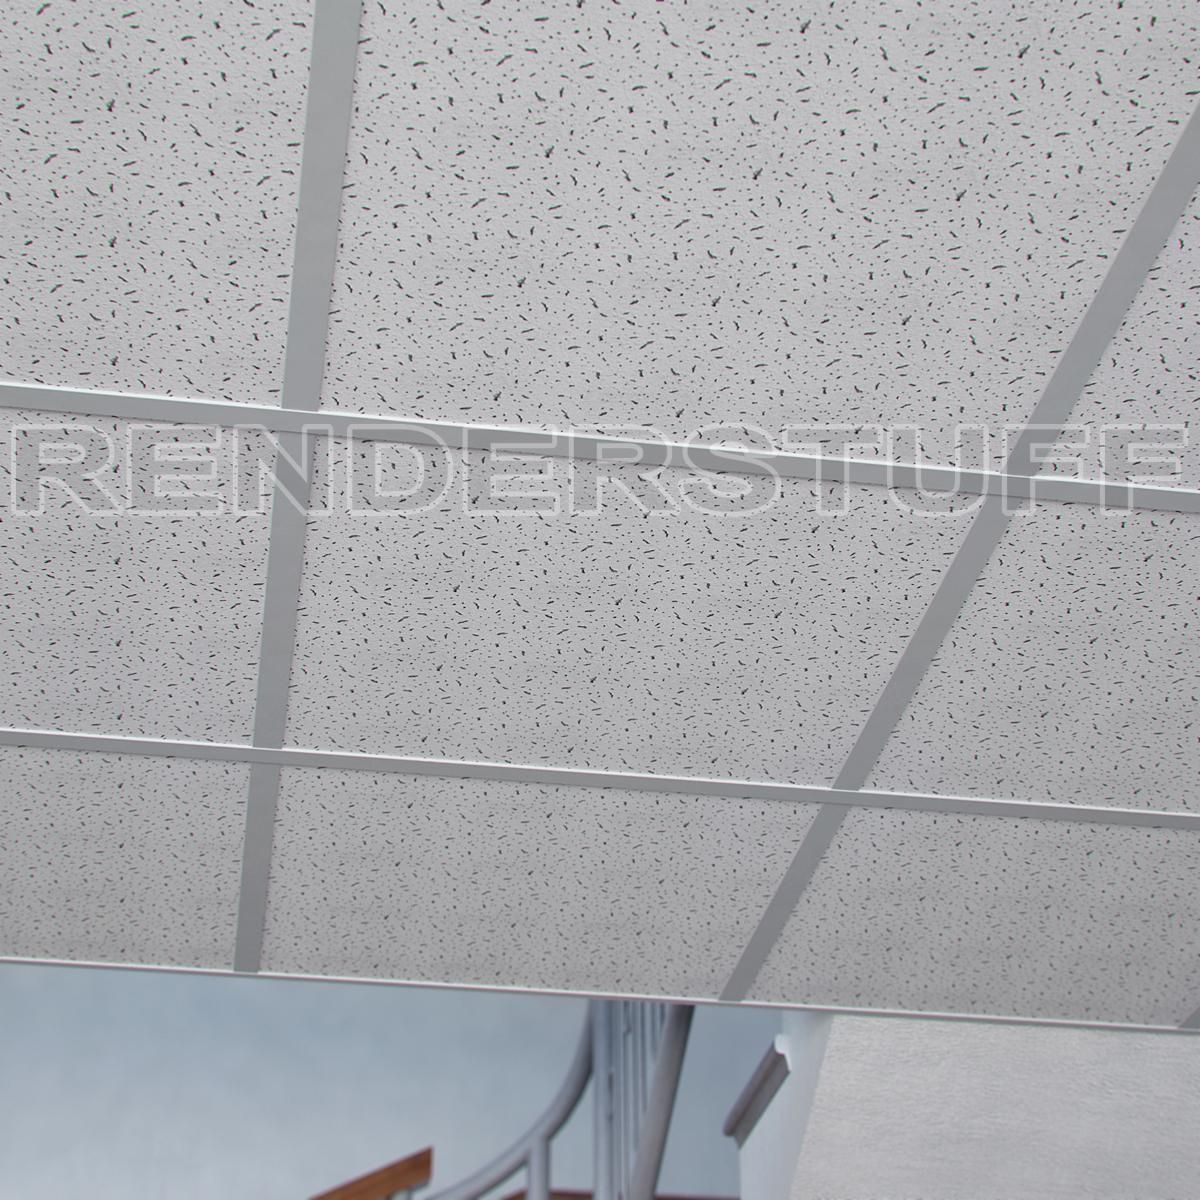 Armstrong drop ceiling tiles httpcreativechairsandtables armstrong drop ceiling tiles dailygadgetfo Image collections